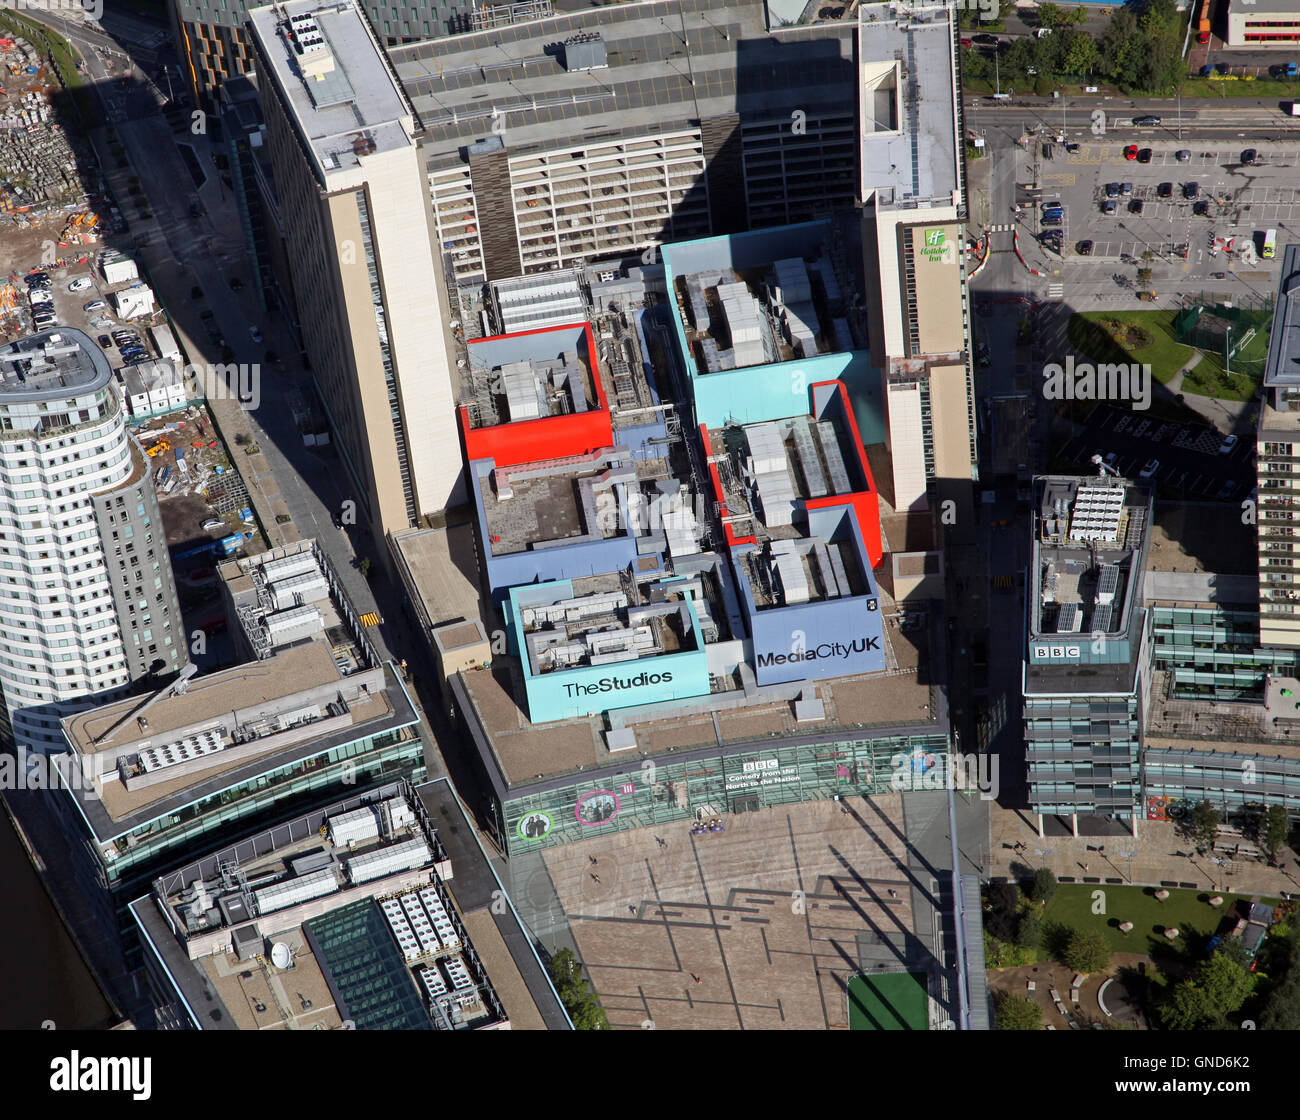 aerial view of the BBC Studios & MediaCity at Salford Quays, Manchester, UK - Stock Image